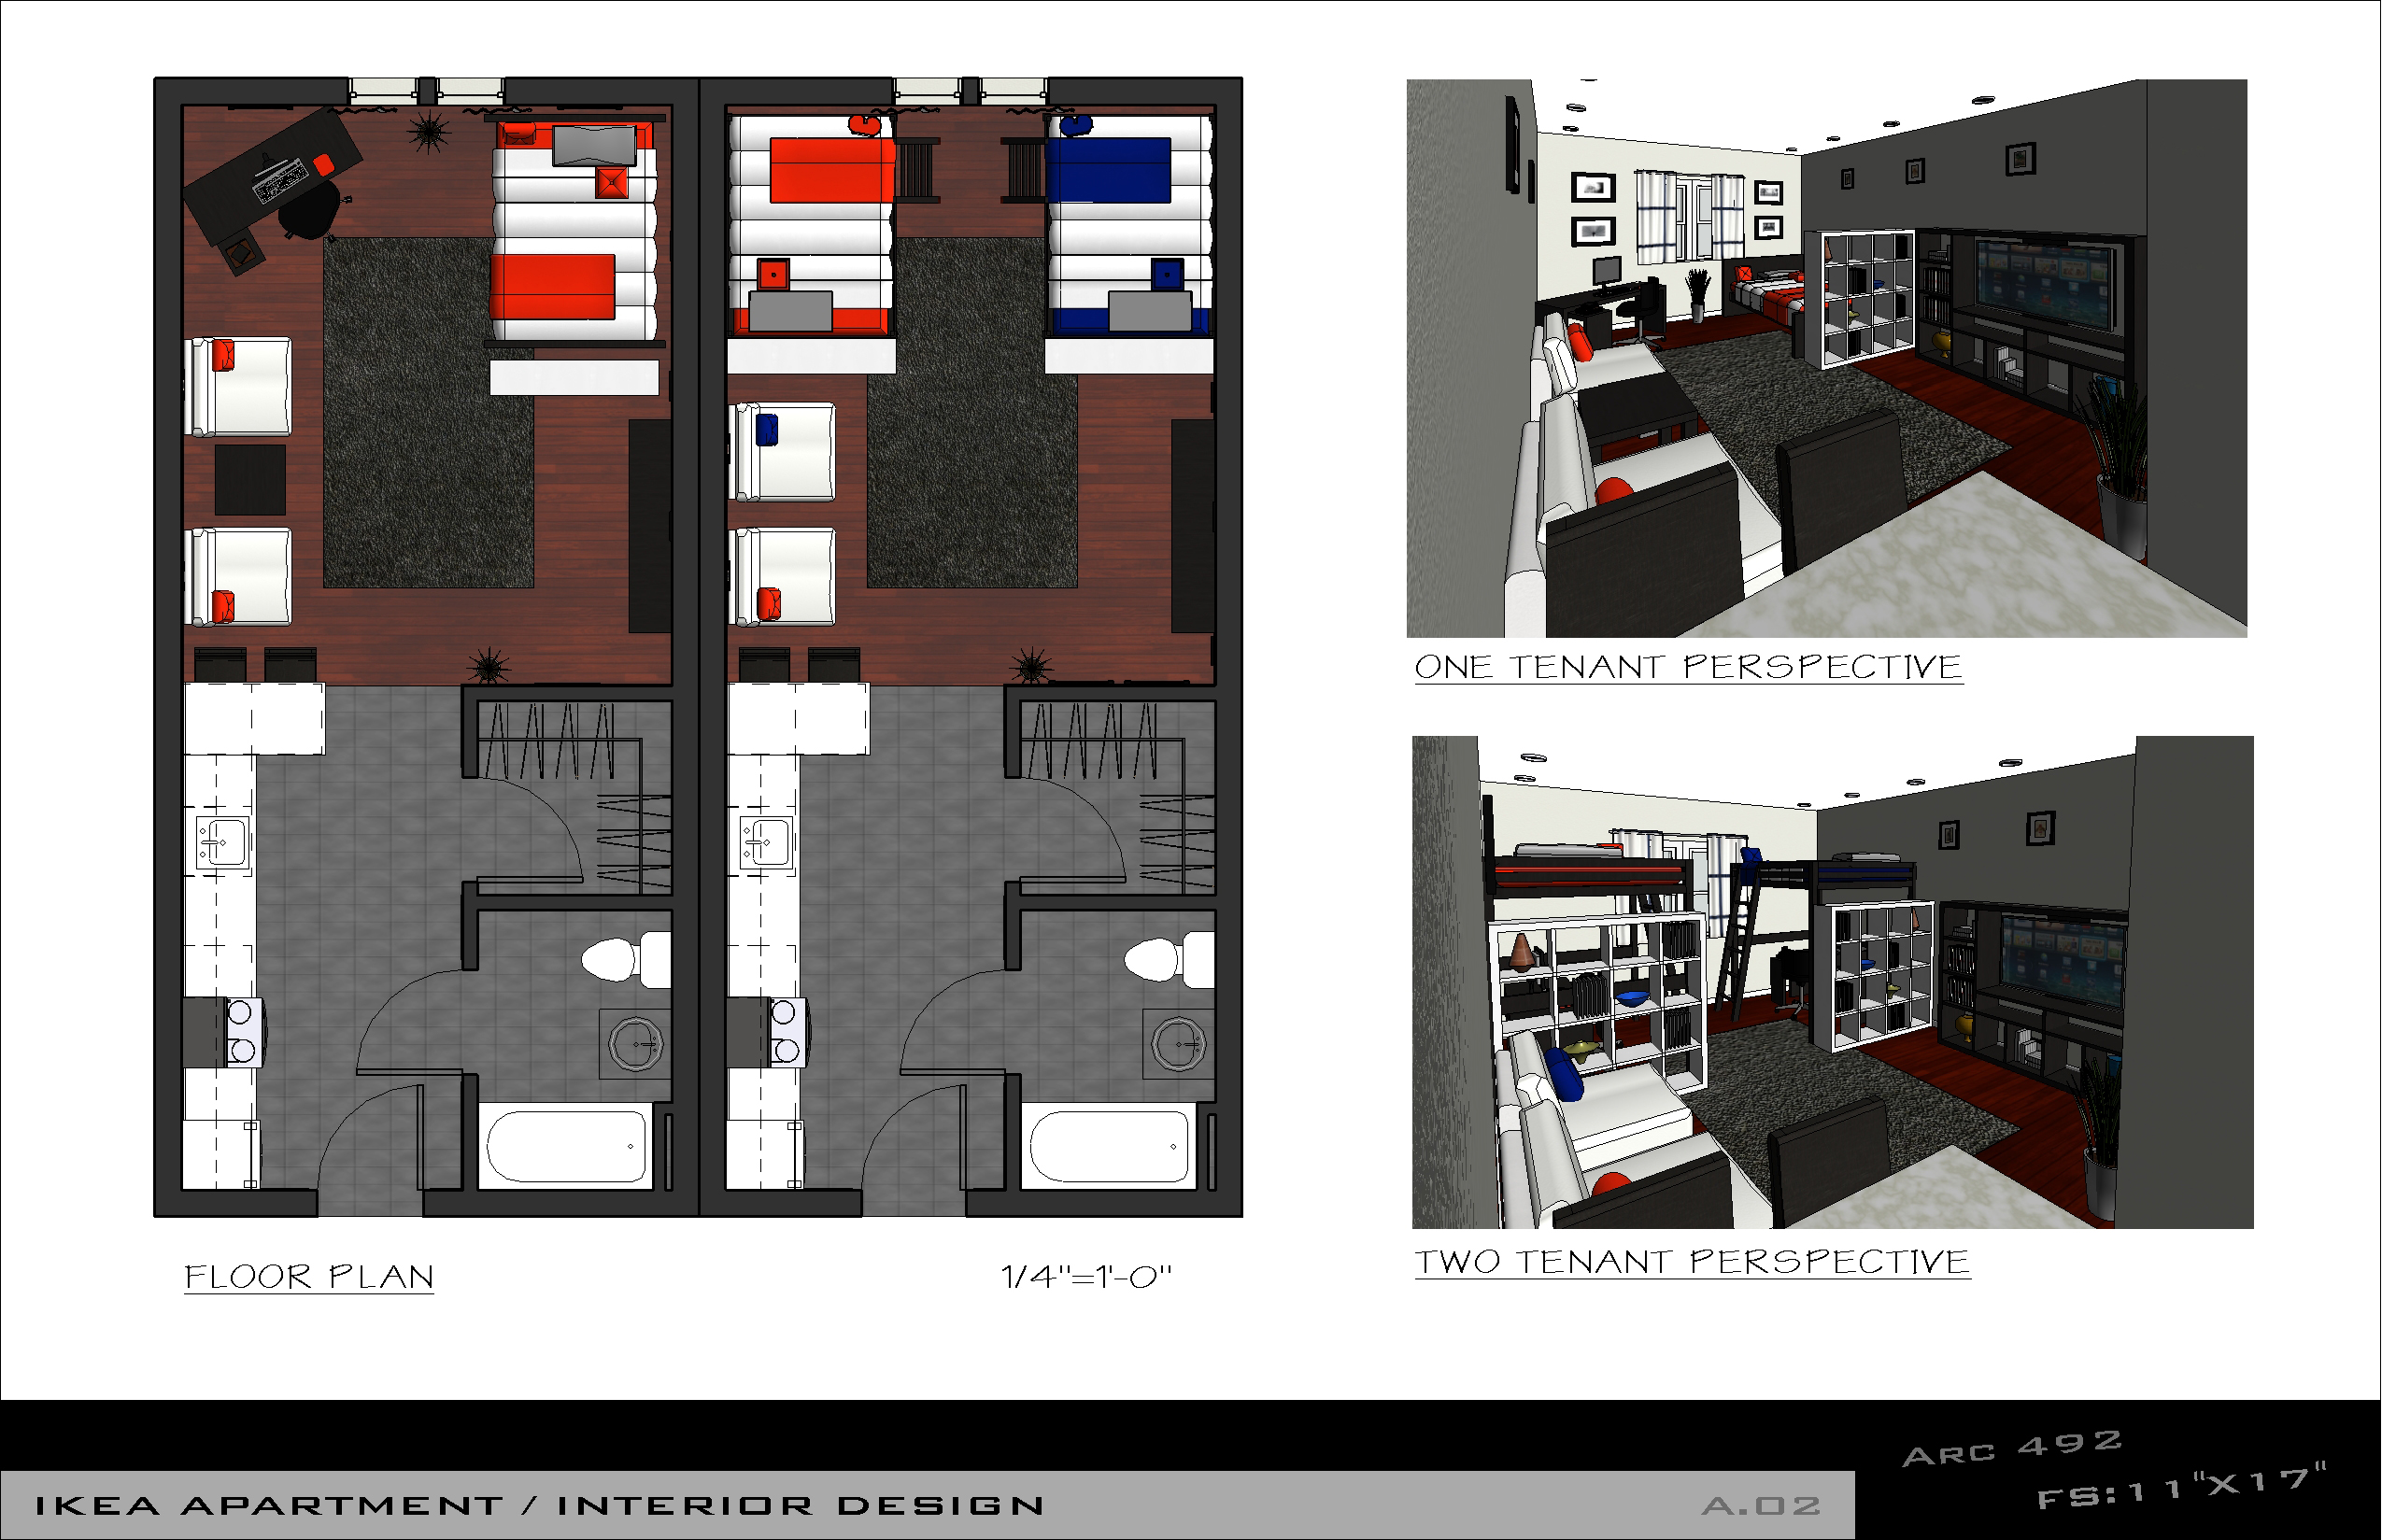 Ikea studio apartment floor plans joy studio design gallery best design - Studio apartment floor plans ...